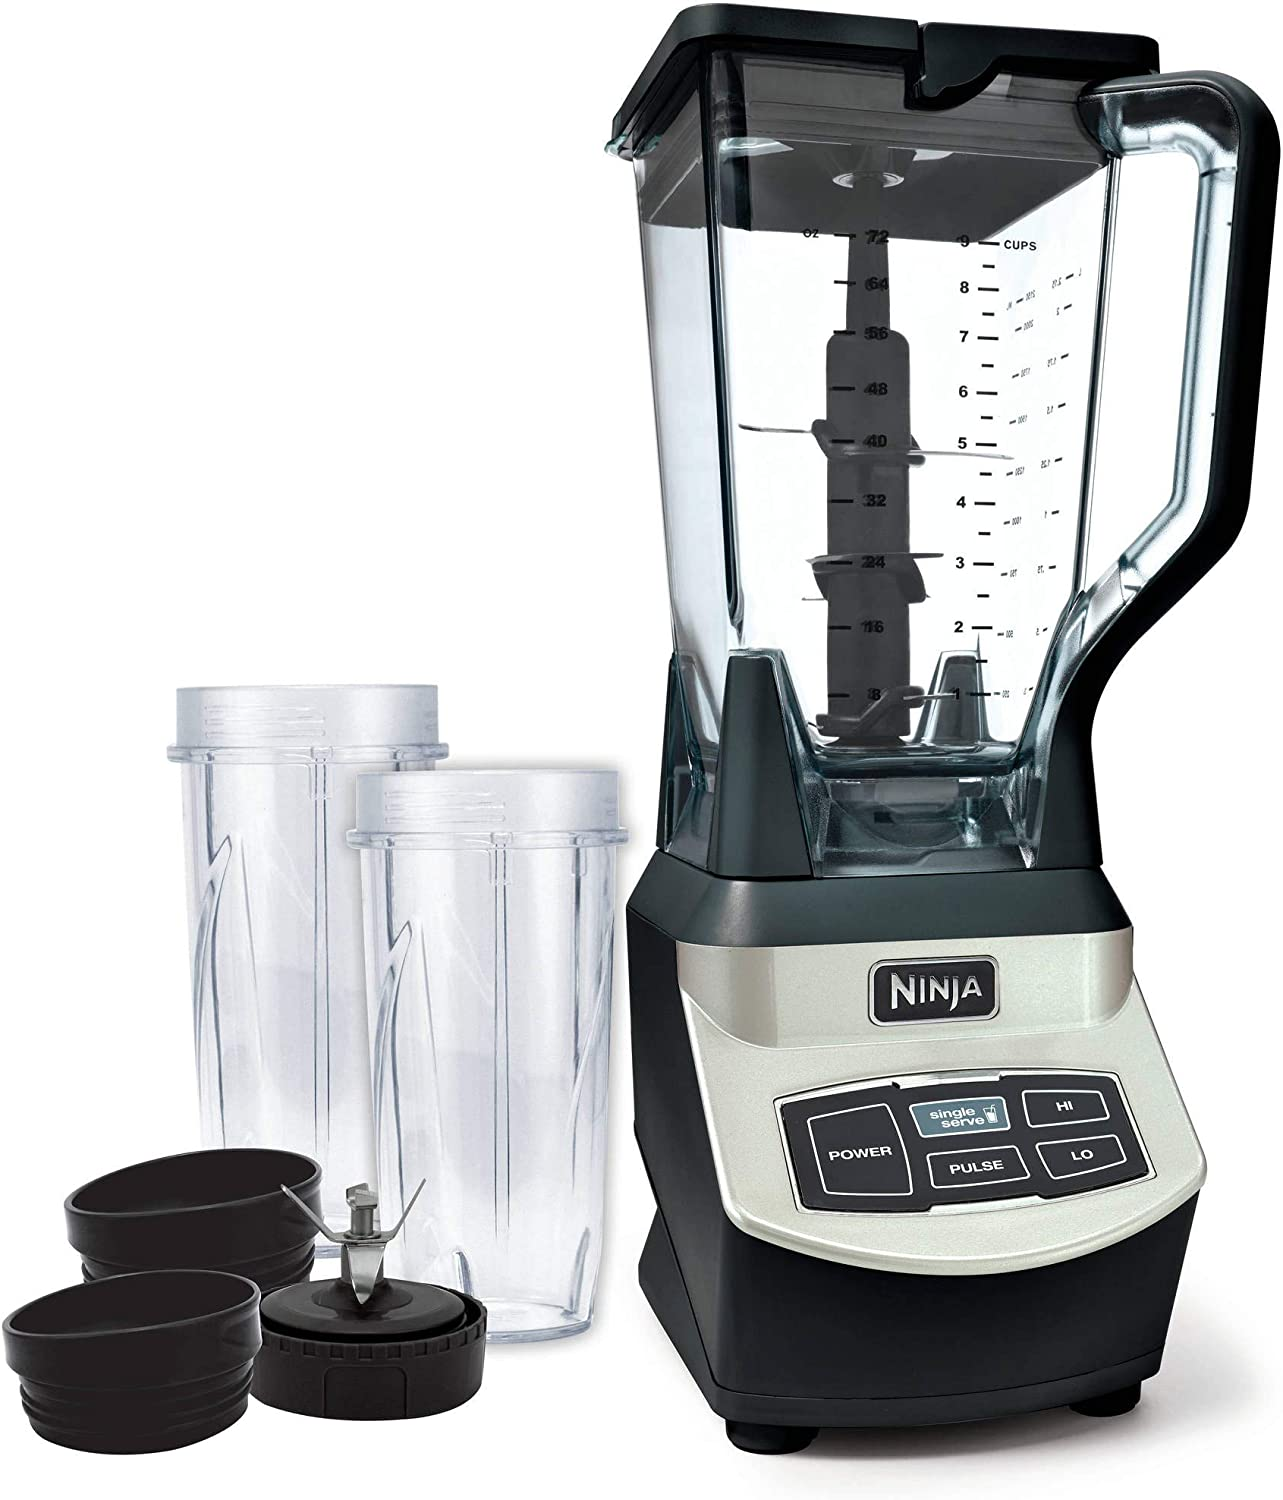 Ninja Professional Blender with Single Serve Cups with an Impressive 1000 Watts Motor Base and XL 72ox Capacity Pitcher BL660WM (Renewed) (Renewed)